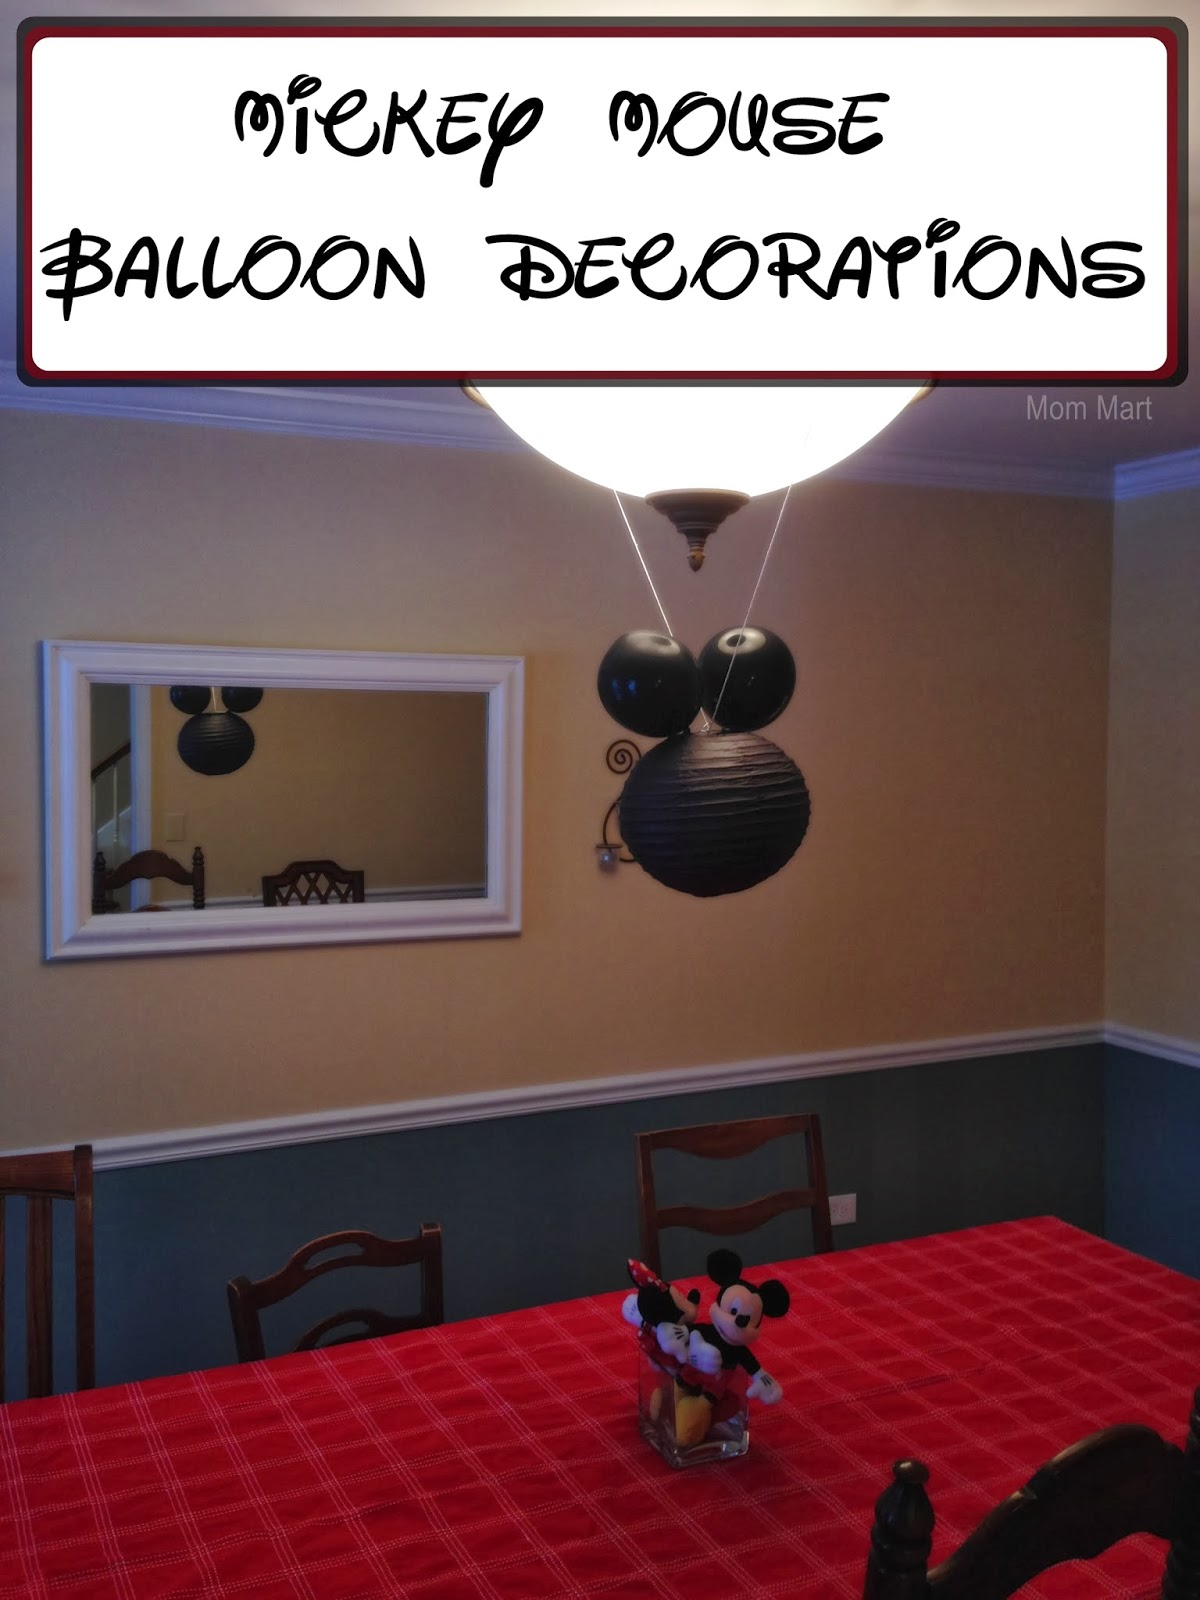 Minnie Mouse Themed Birthday Party - Mickey Mouse Balloon Decorations